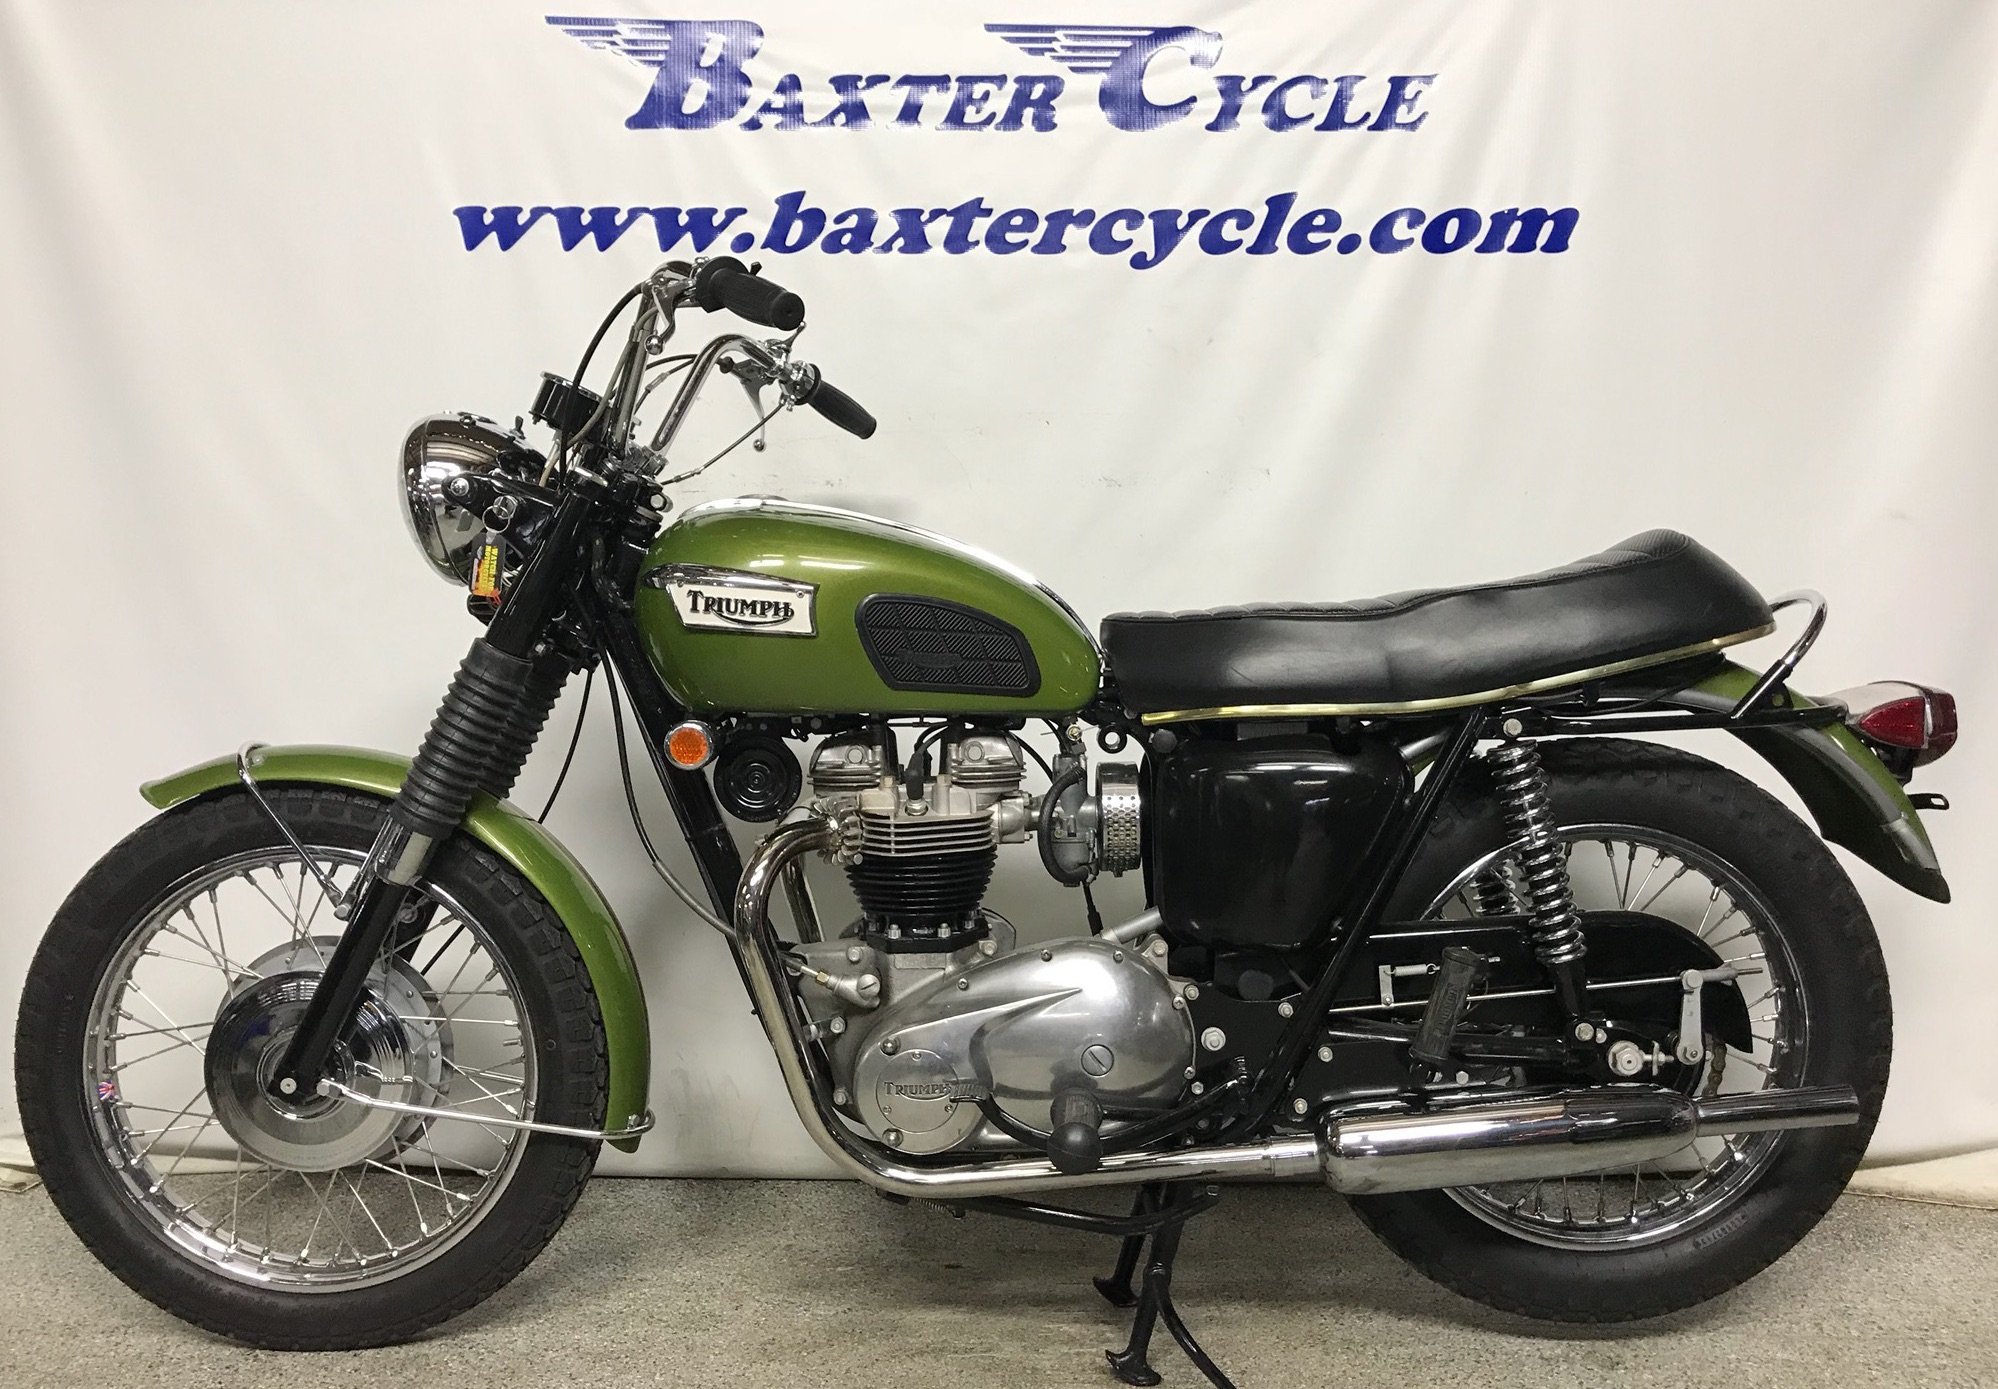 1970 Triumph Tr6r Tiger Baxter Cycle